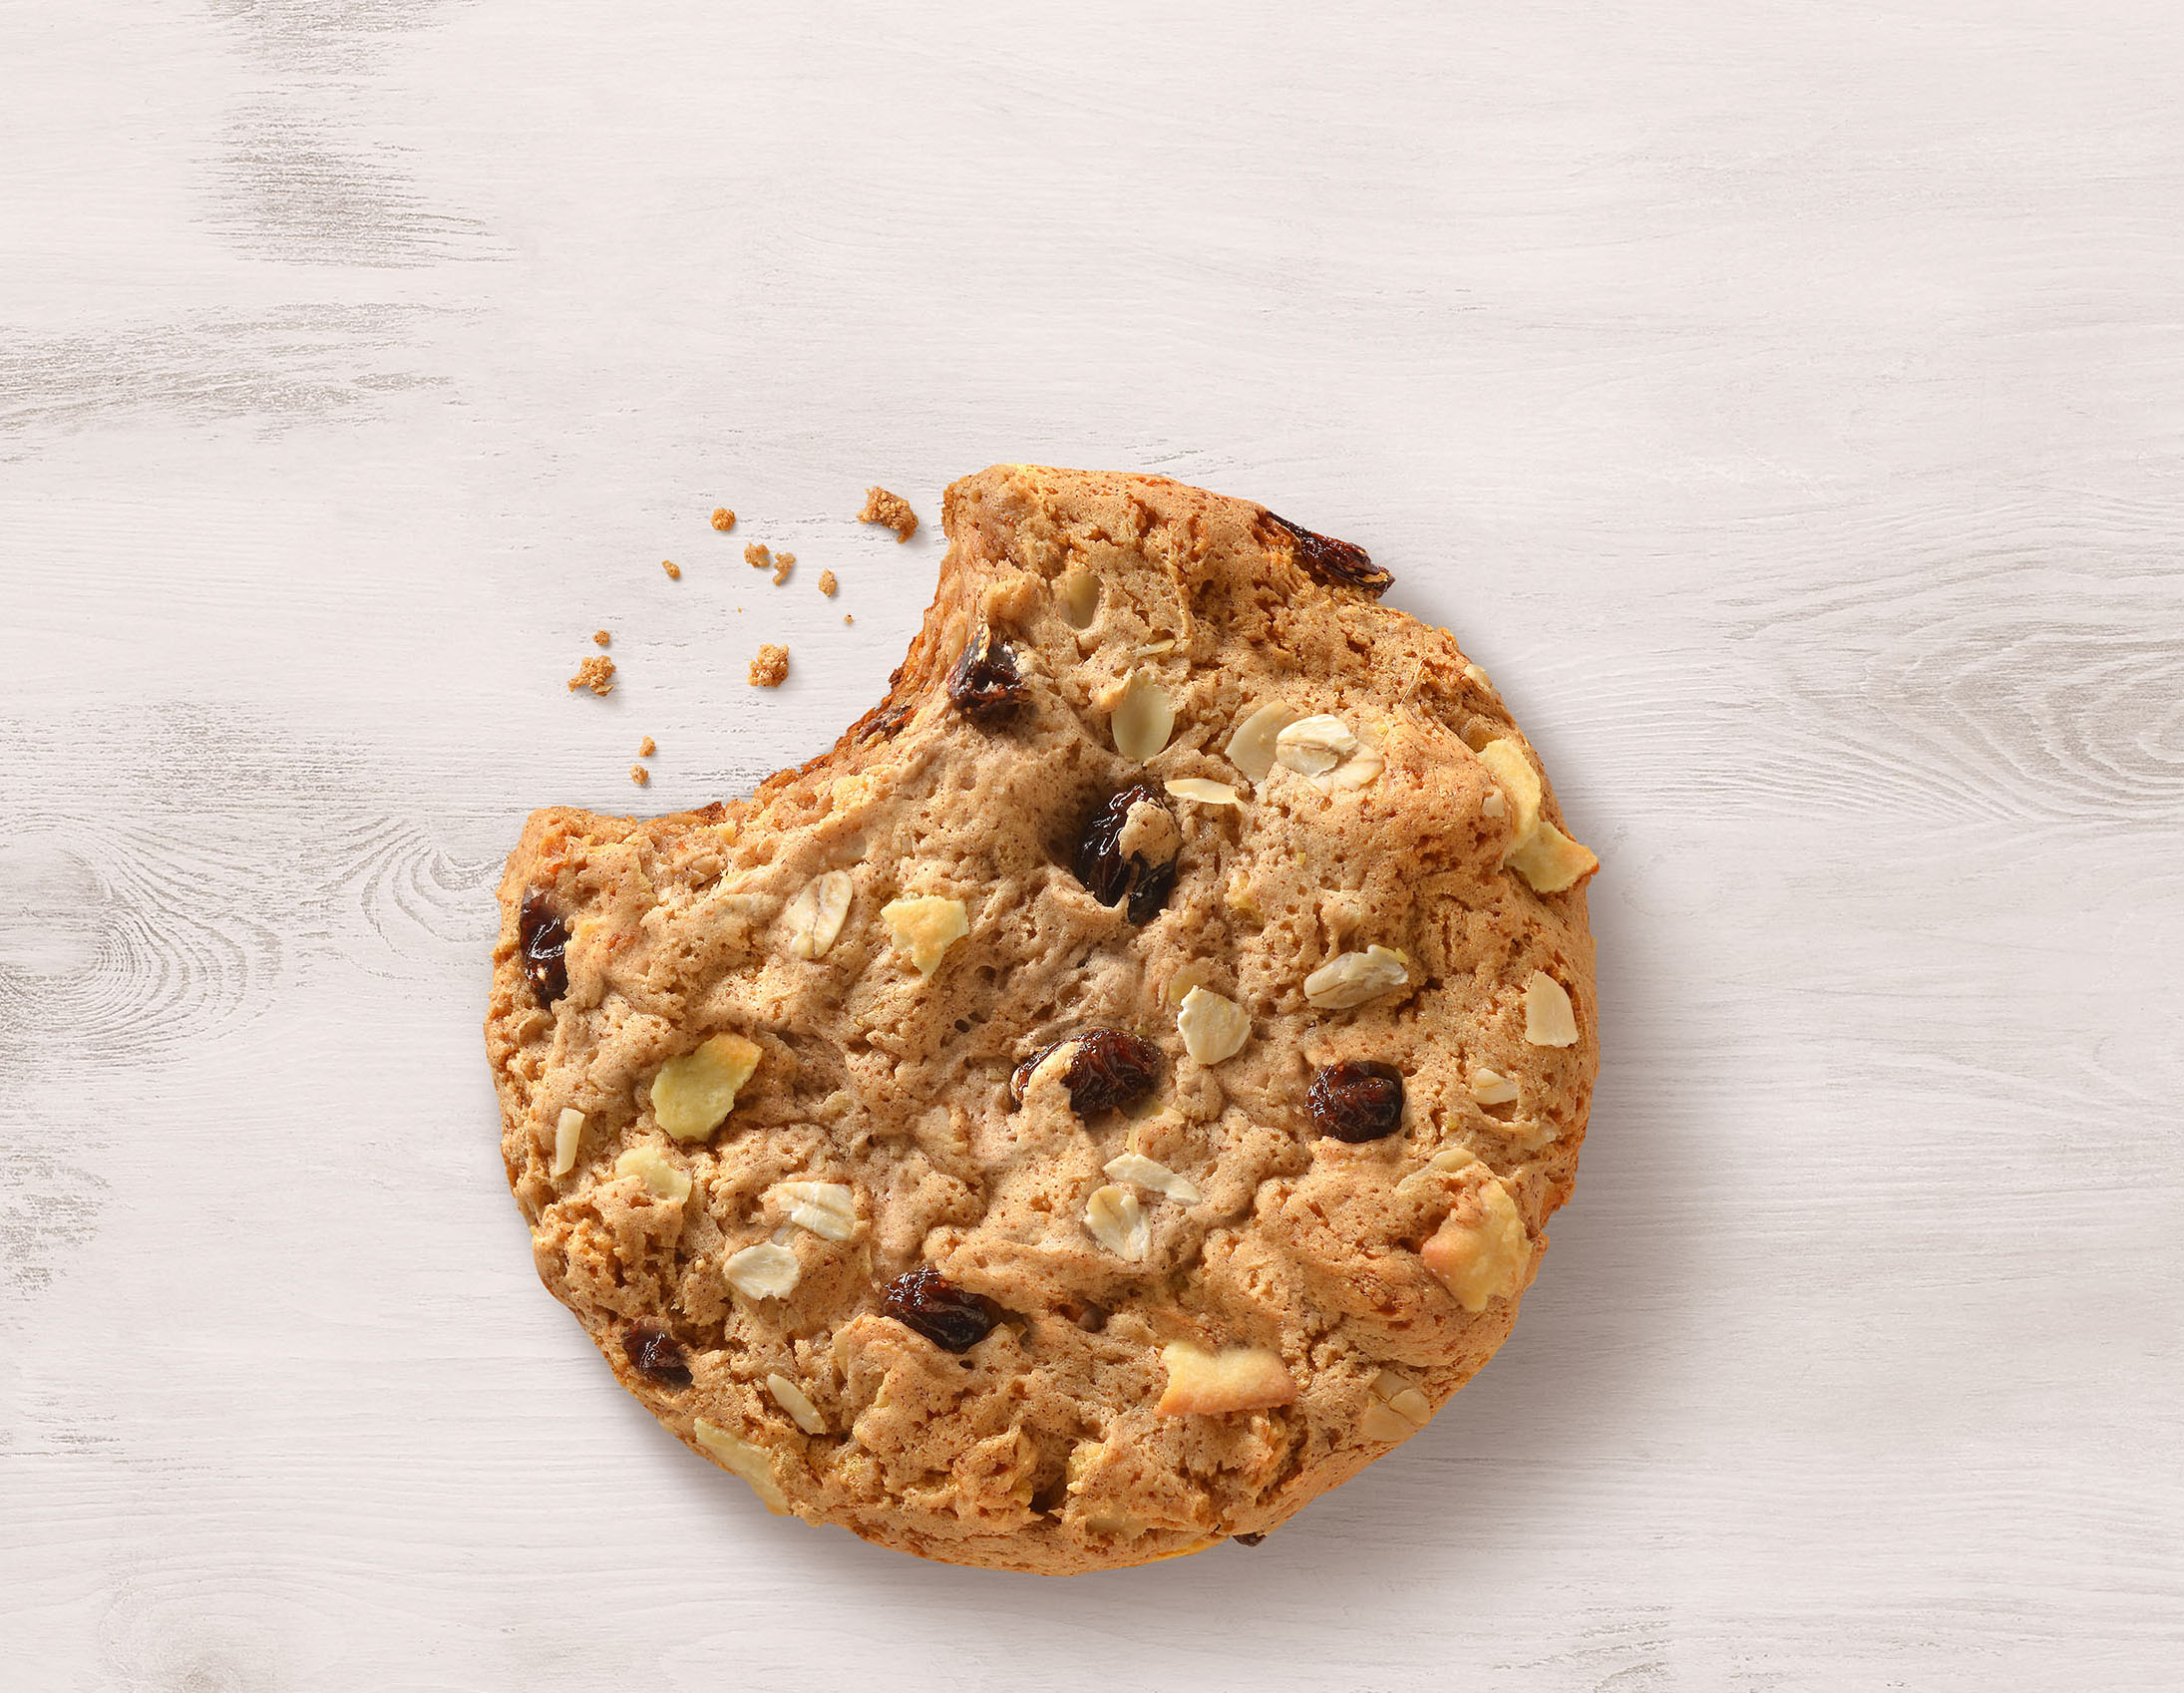 mike wepplo photoreal photography chocolate chip oatmeal raisin cookie